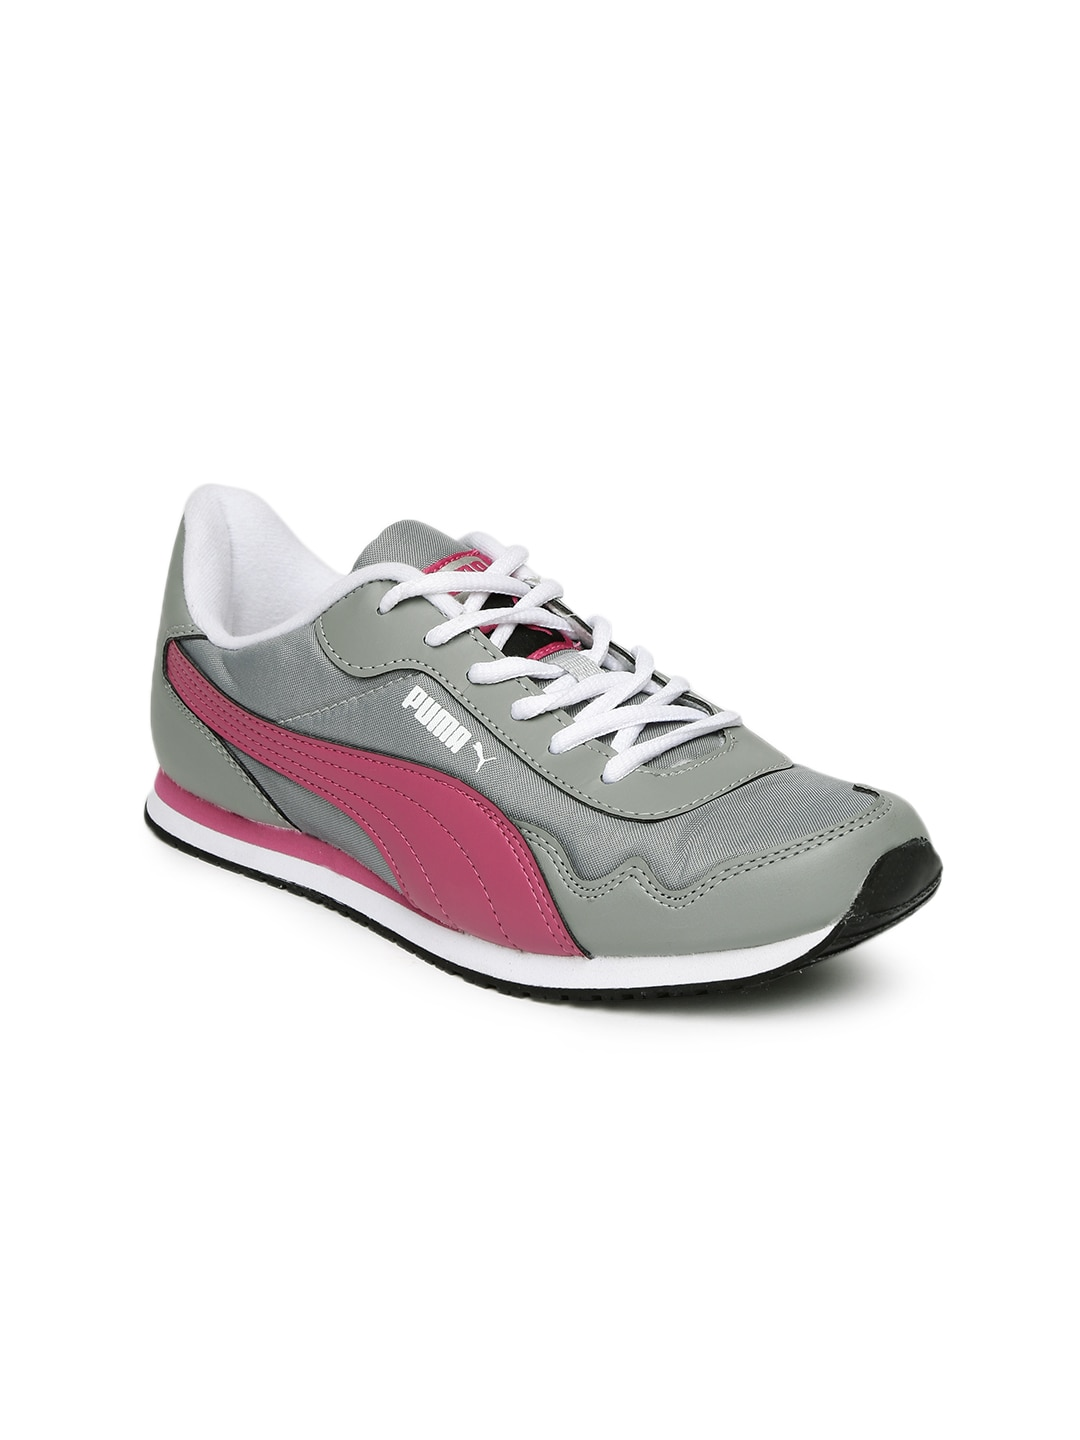 cb5fe99cf9b8 Puma 36213302 Women Grey And Pink Casual Shoes - Best Price in ...